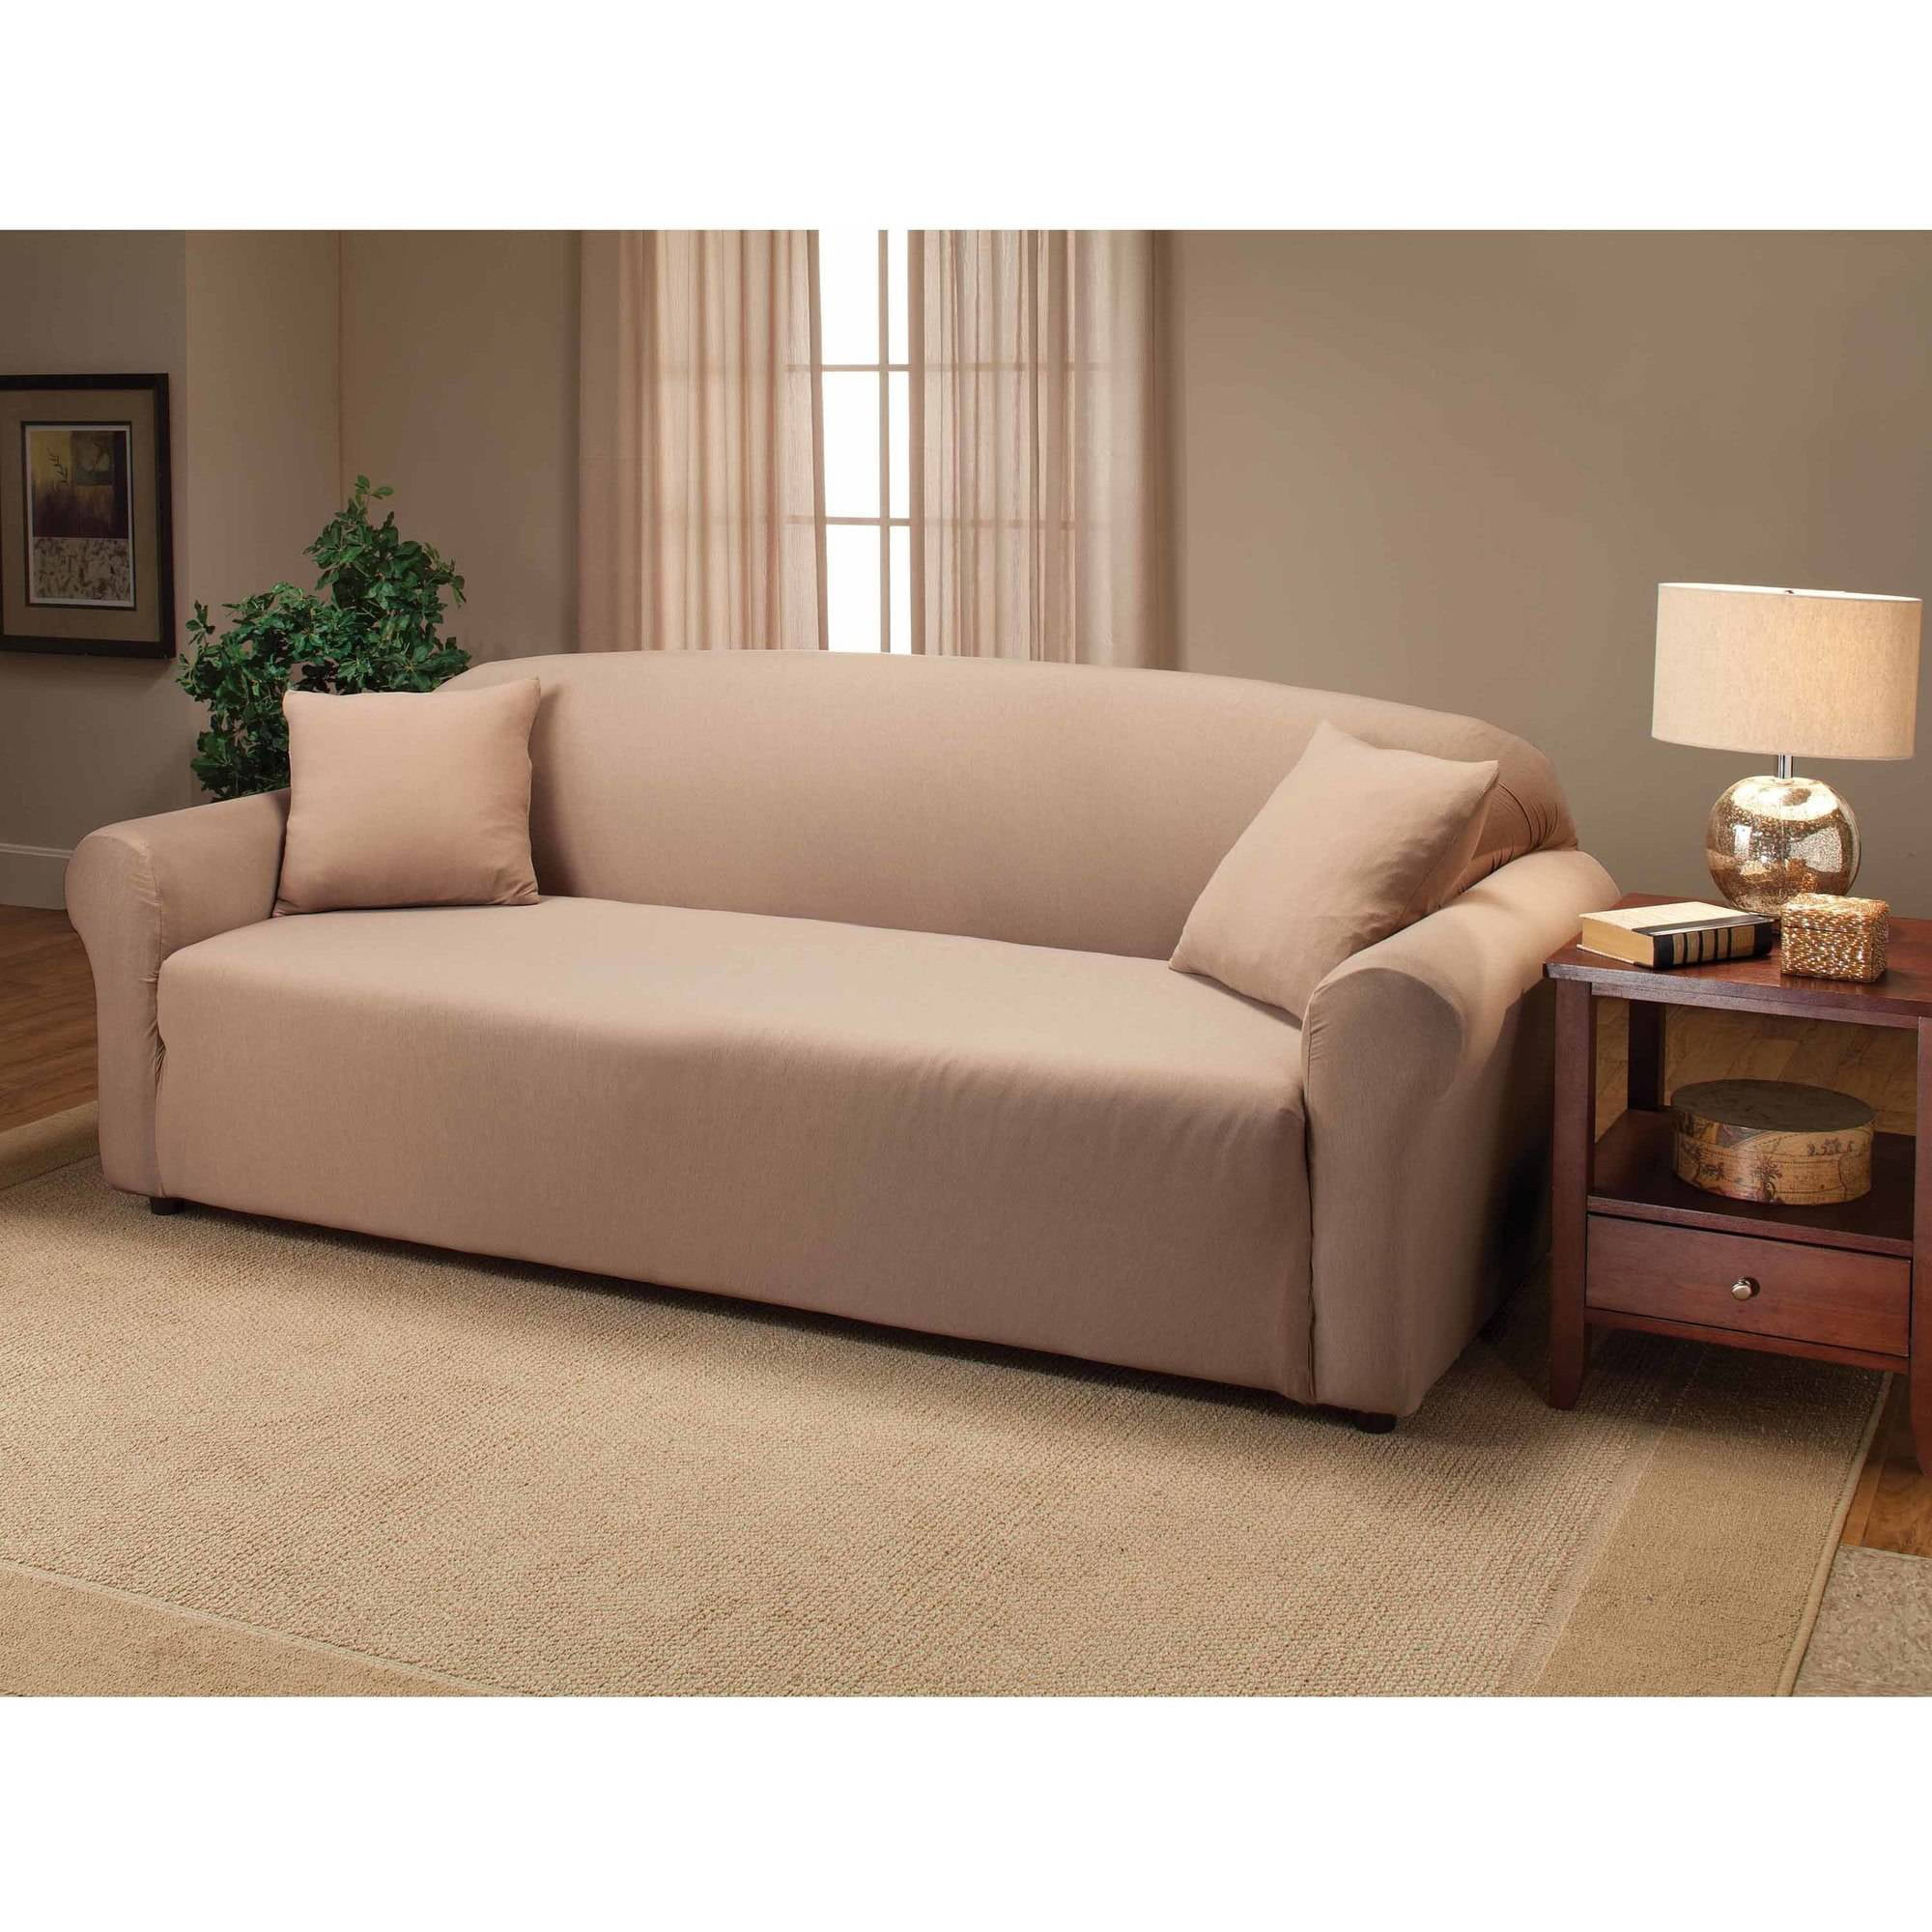 Better homes and gardens one piece stretch fine corduroy for Sofas de piel economicos